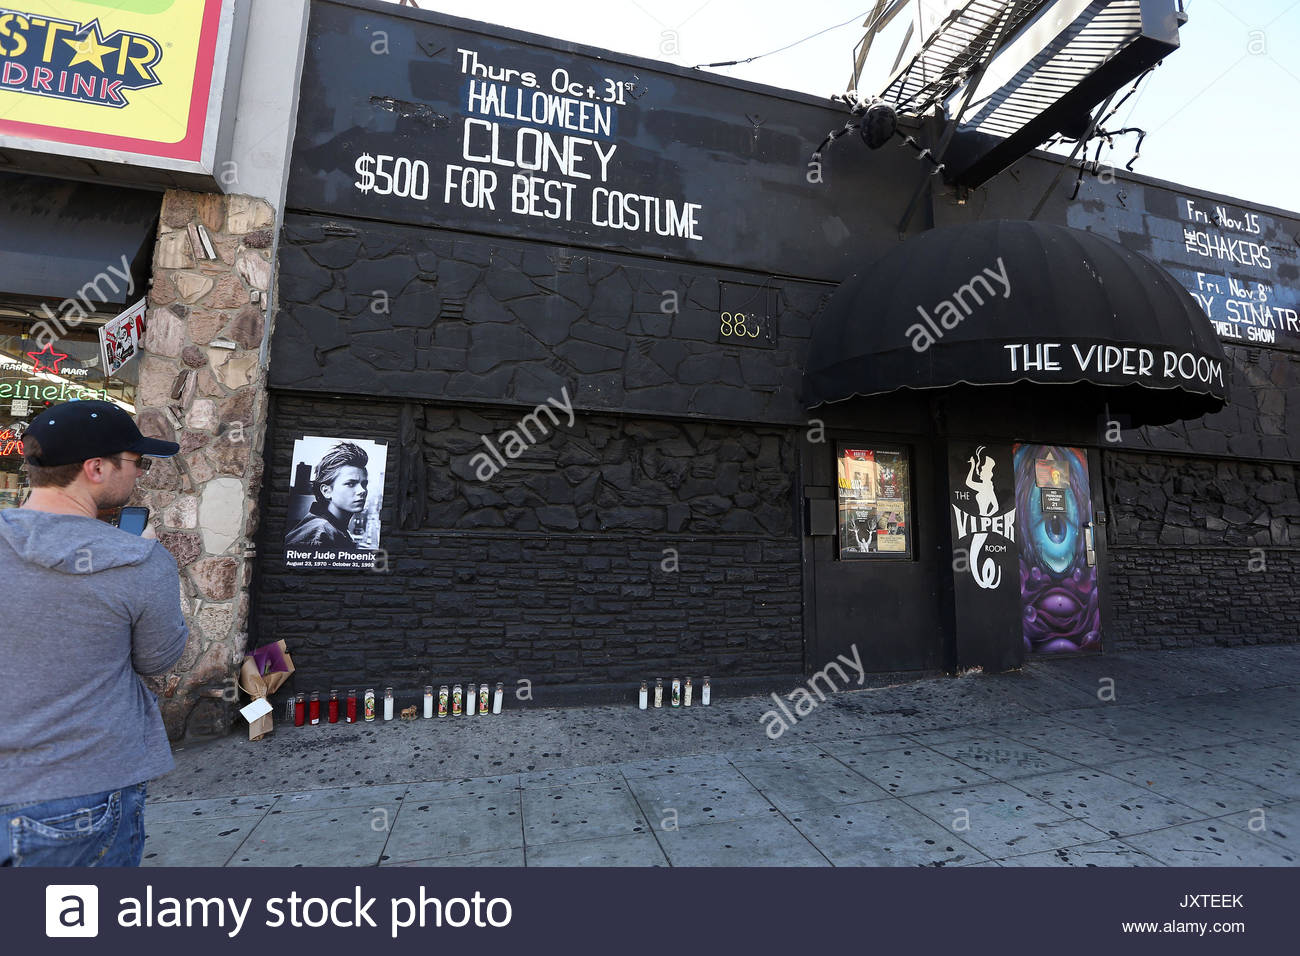 General View. Candles are placed outside The Viper Room to mark ...